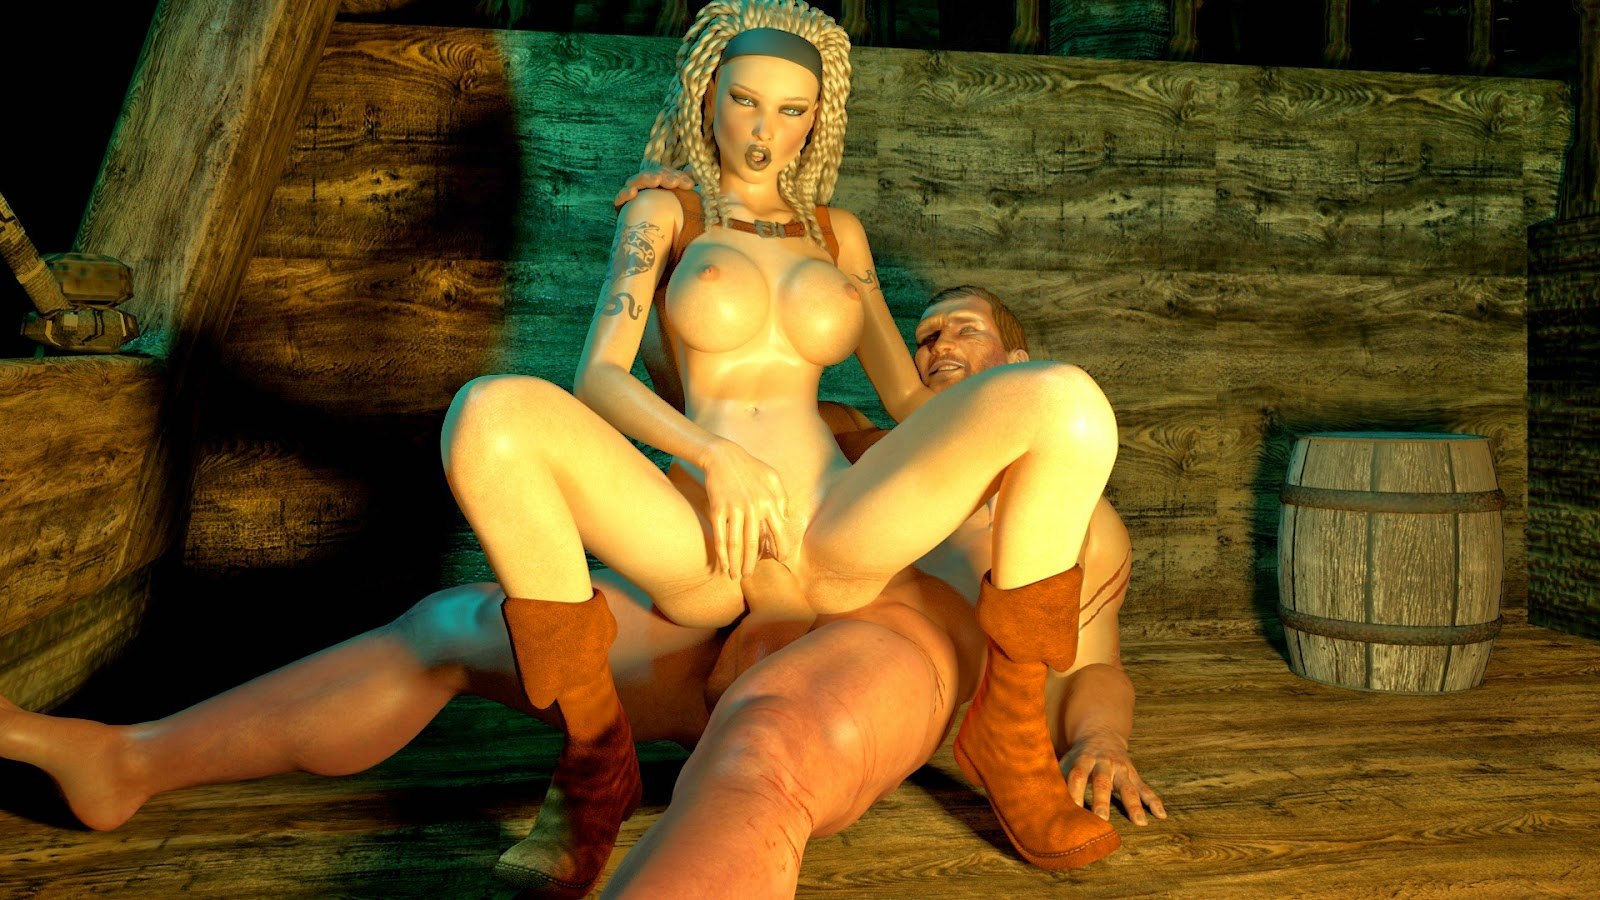 Hd sexy games screenshot erotic clip